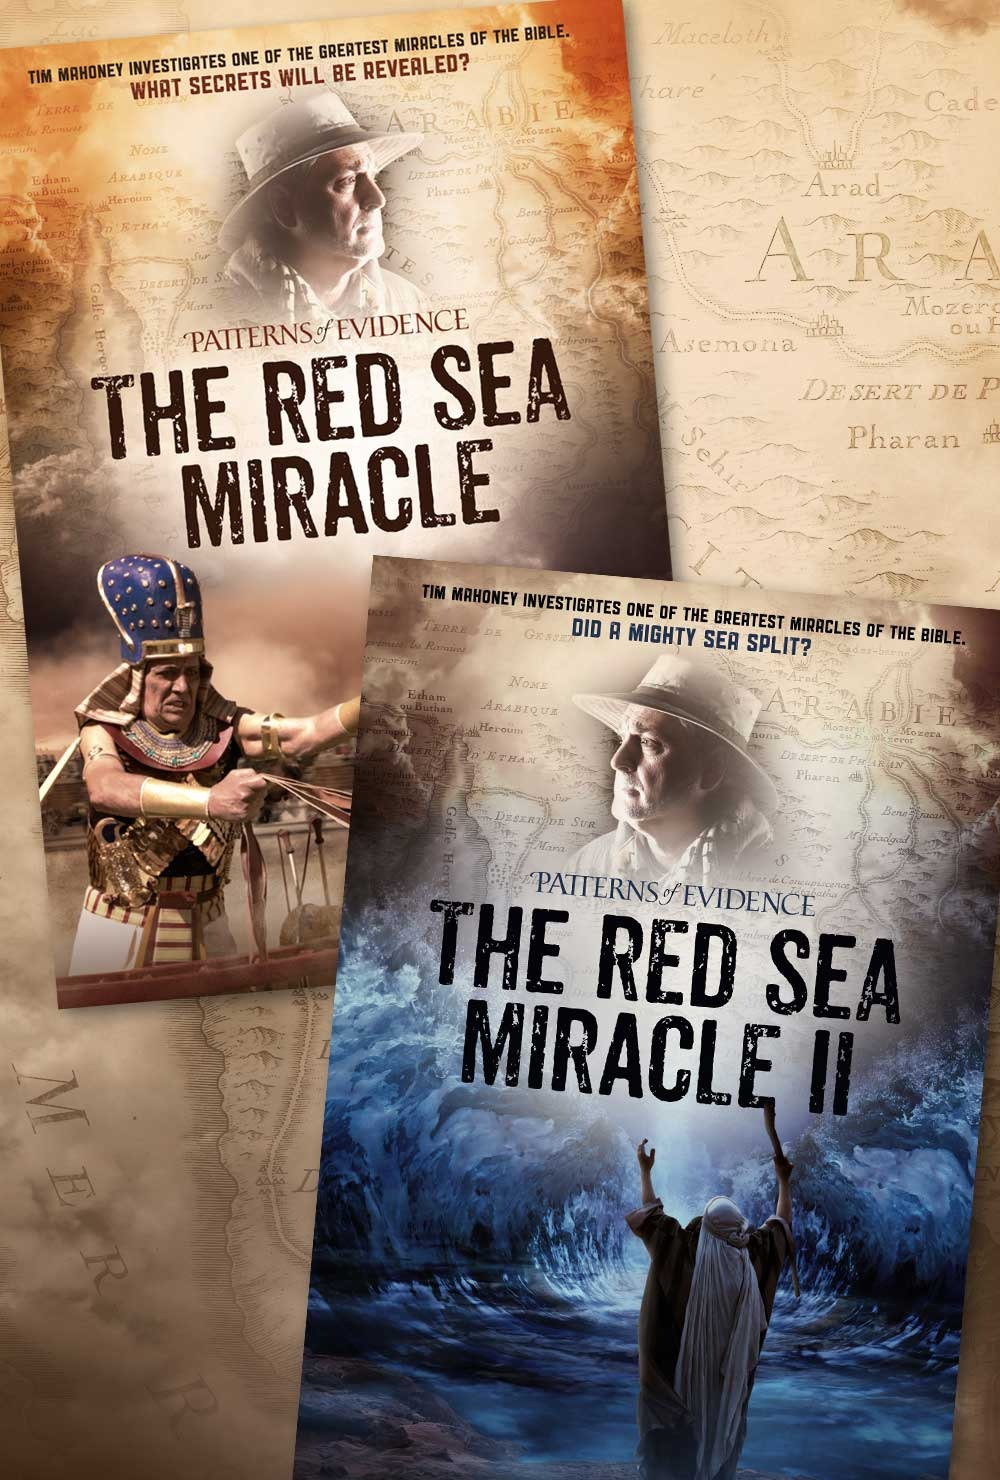 Patterns of Evidence: The Red Sea Miracle - Part 1